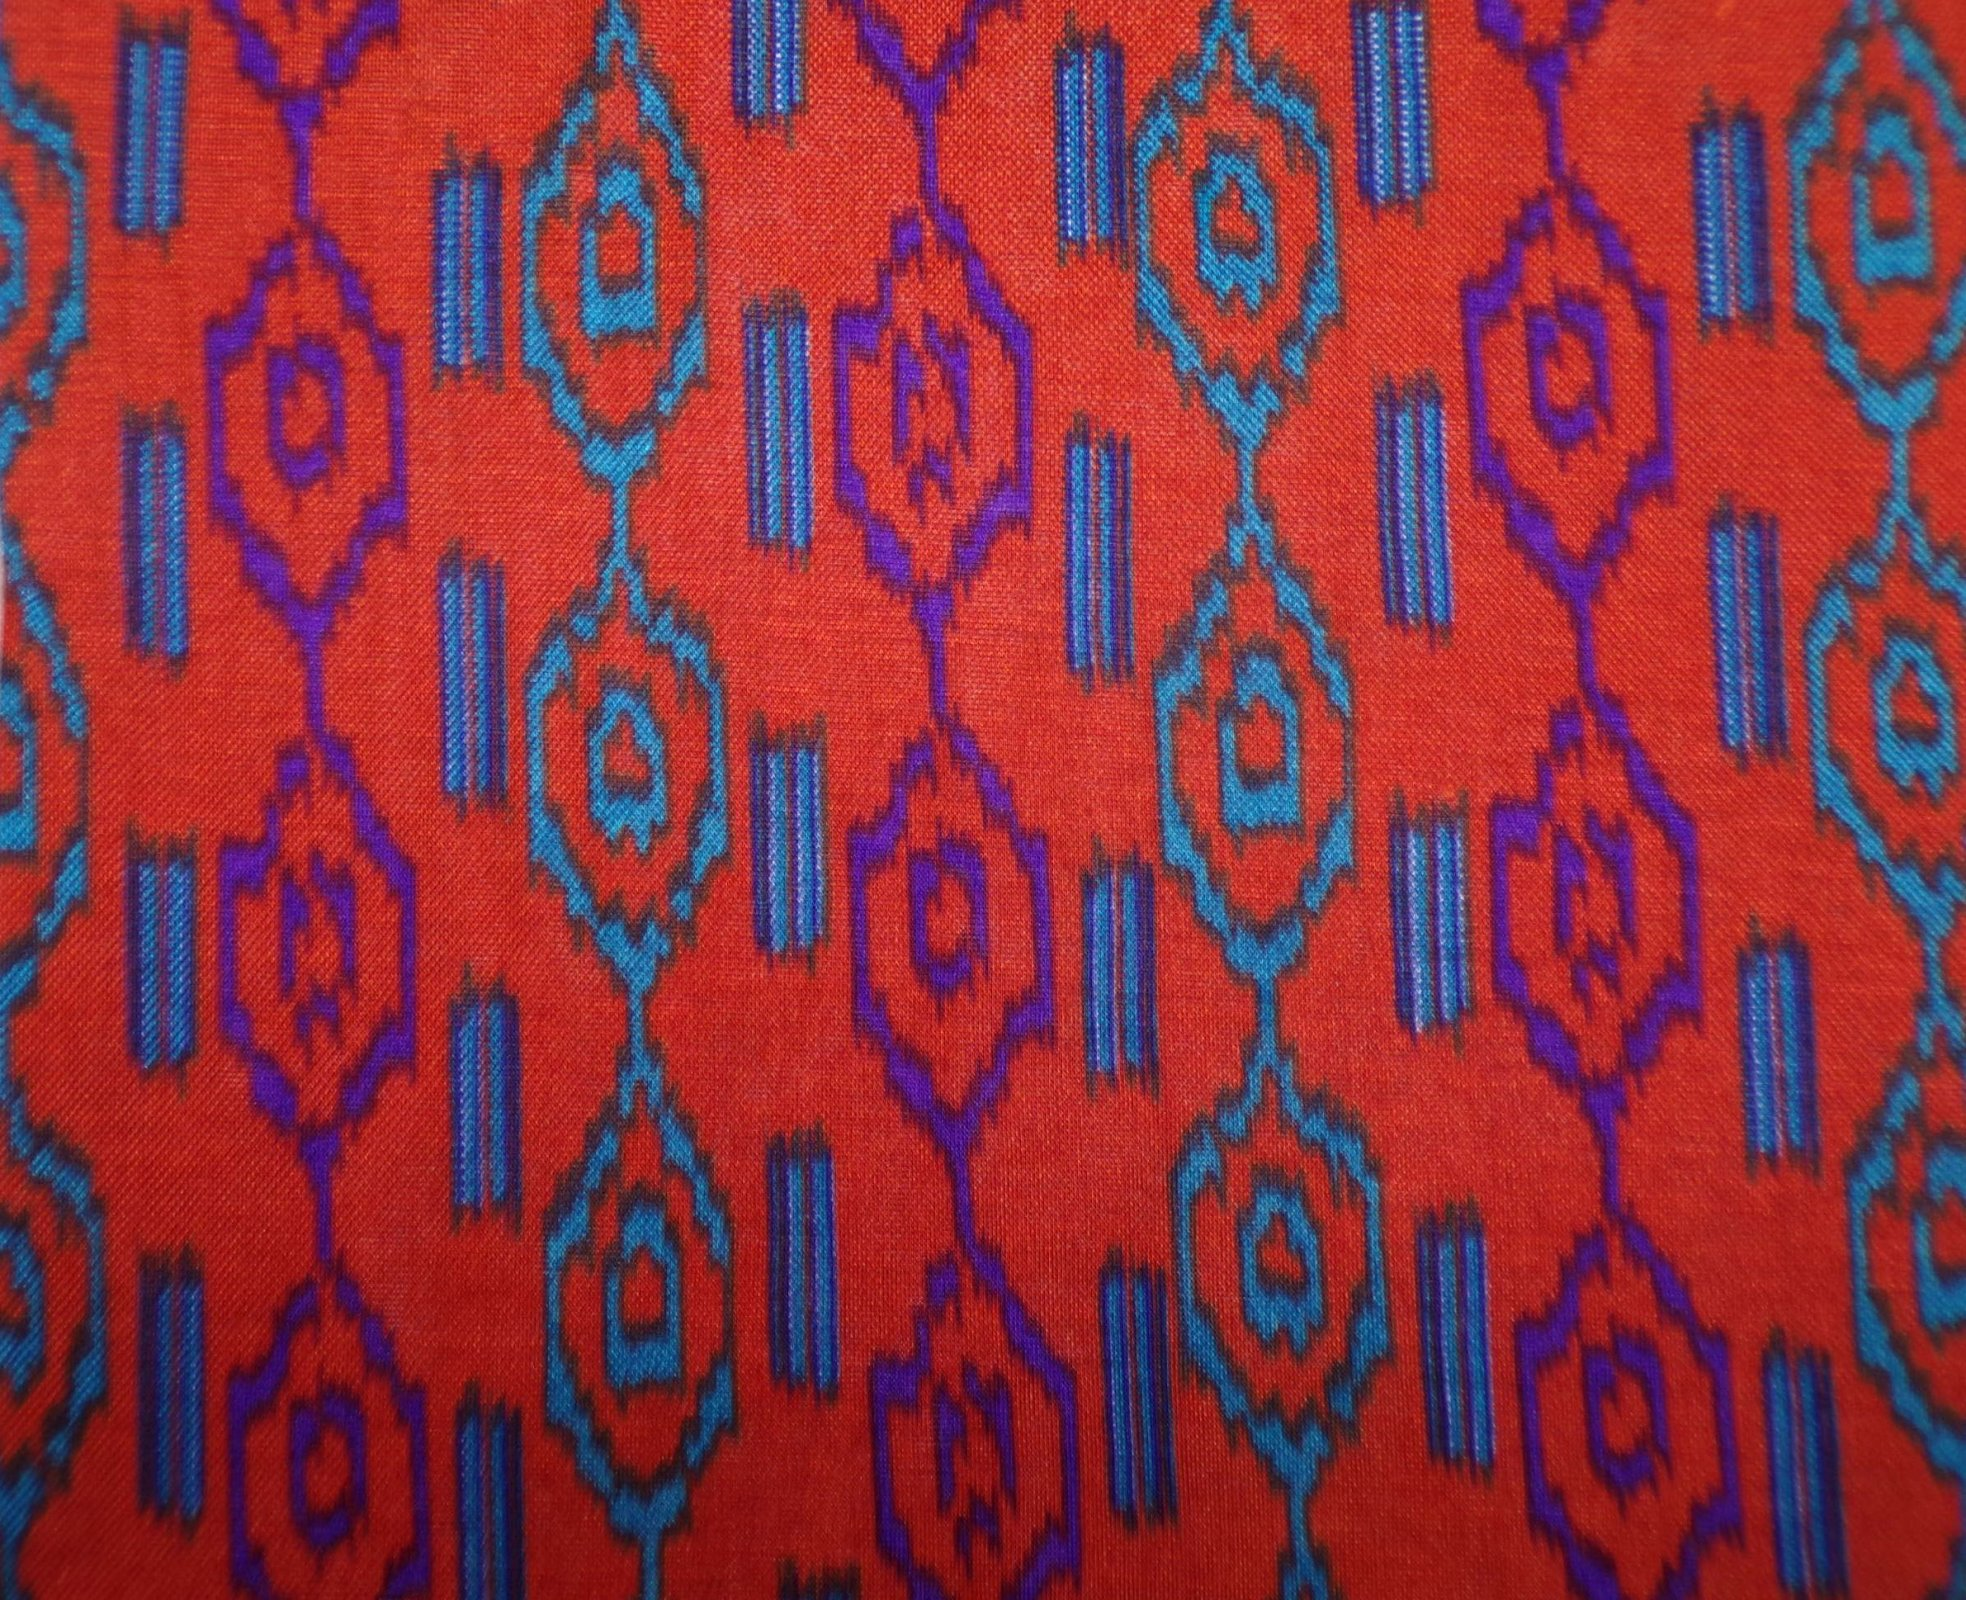 Cotton Jersey - Rust with Teal and Purple Geometric